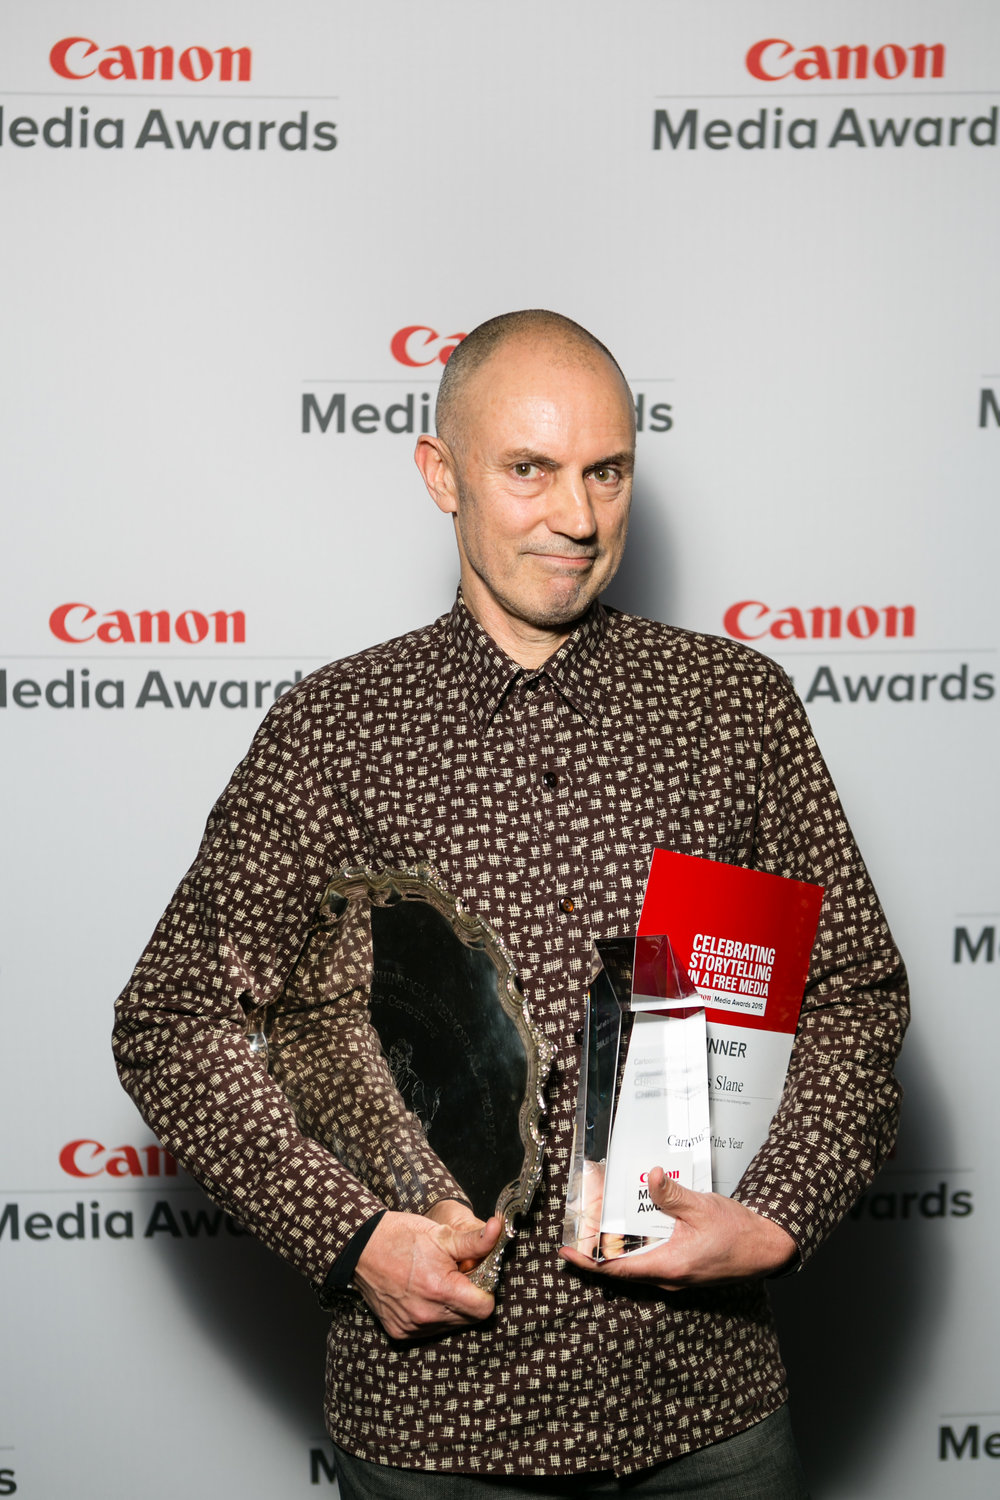 canon_media_awards_2015_interlike_nz_clinton_tudor-5871-170.jpg